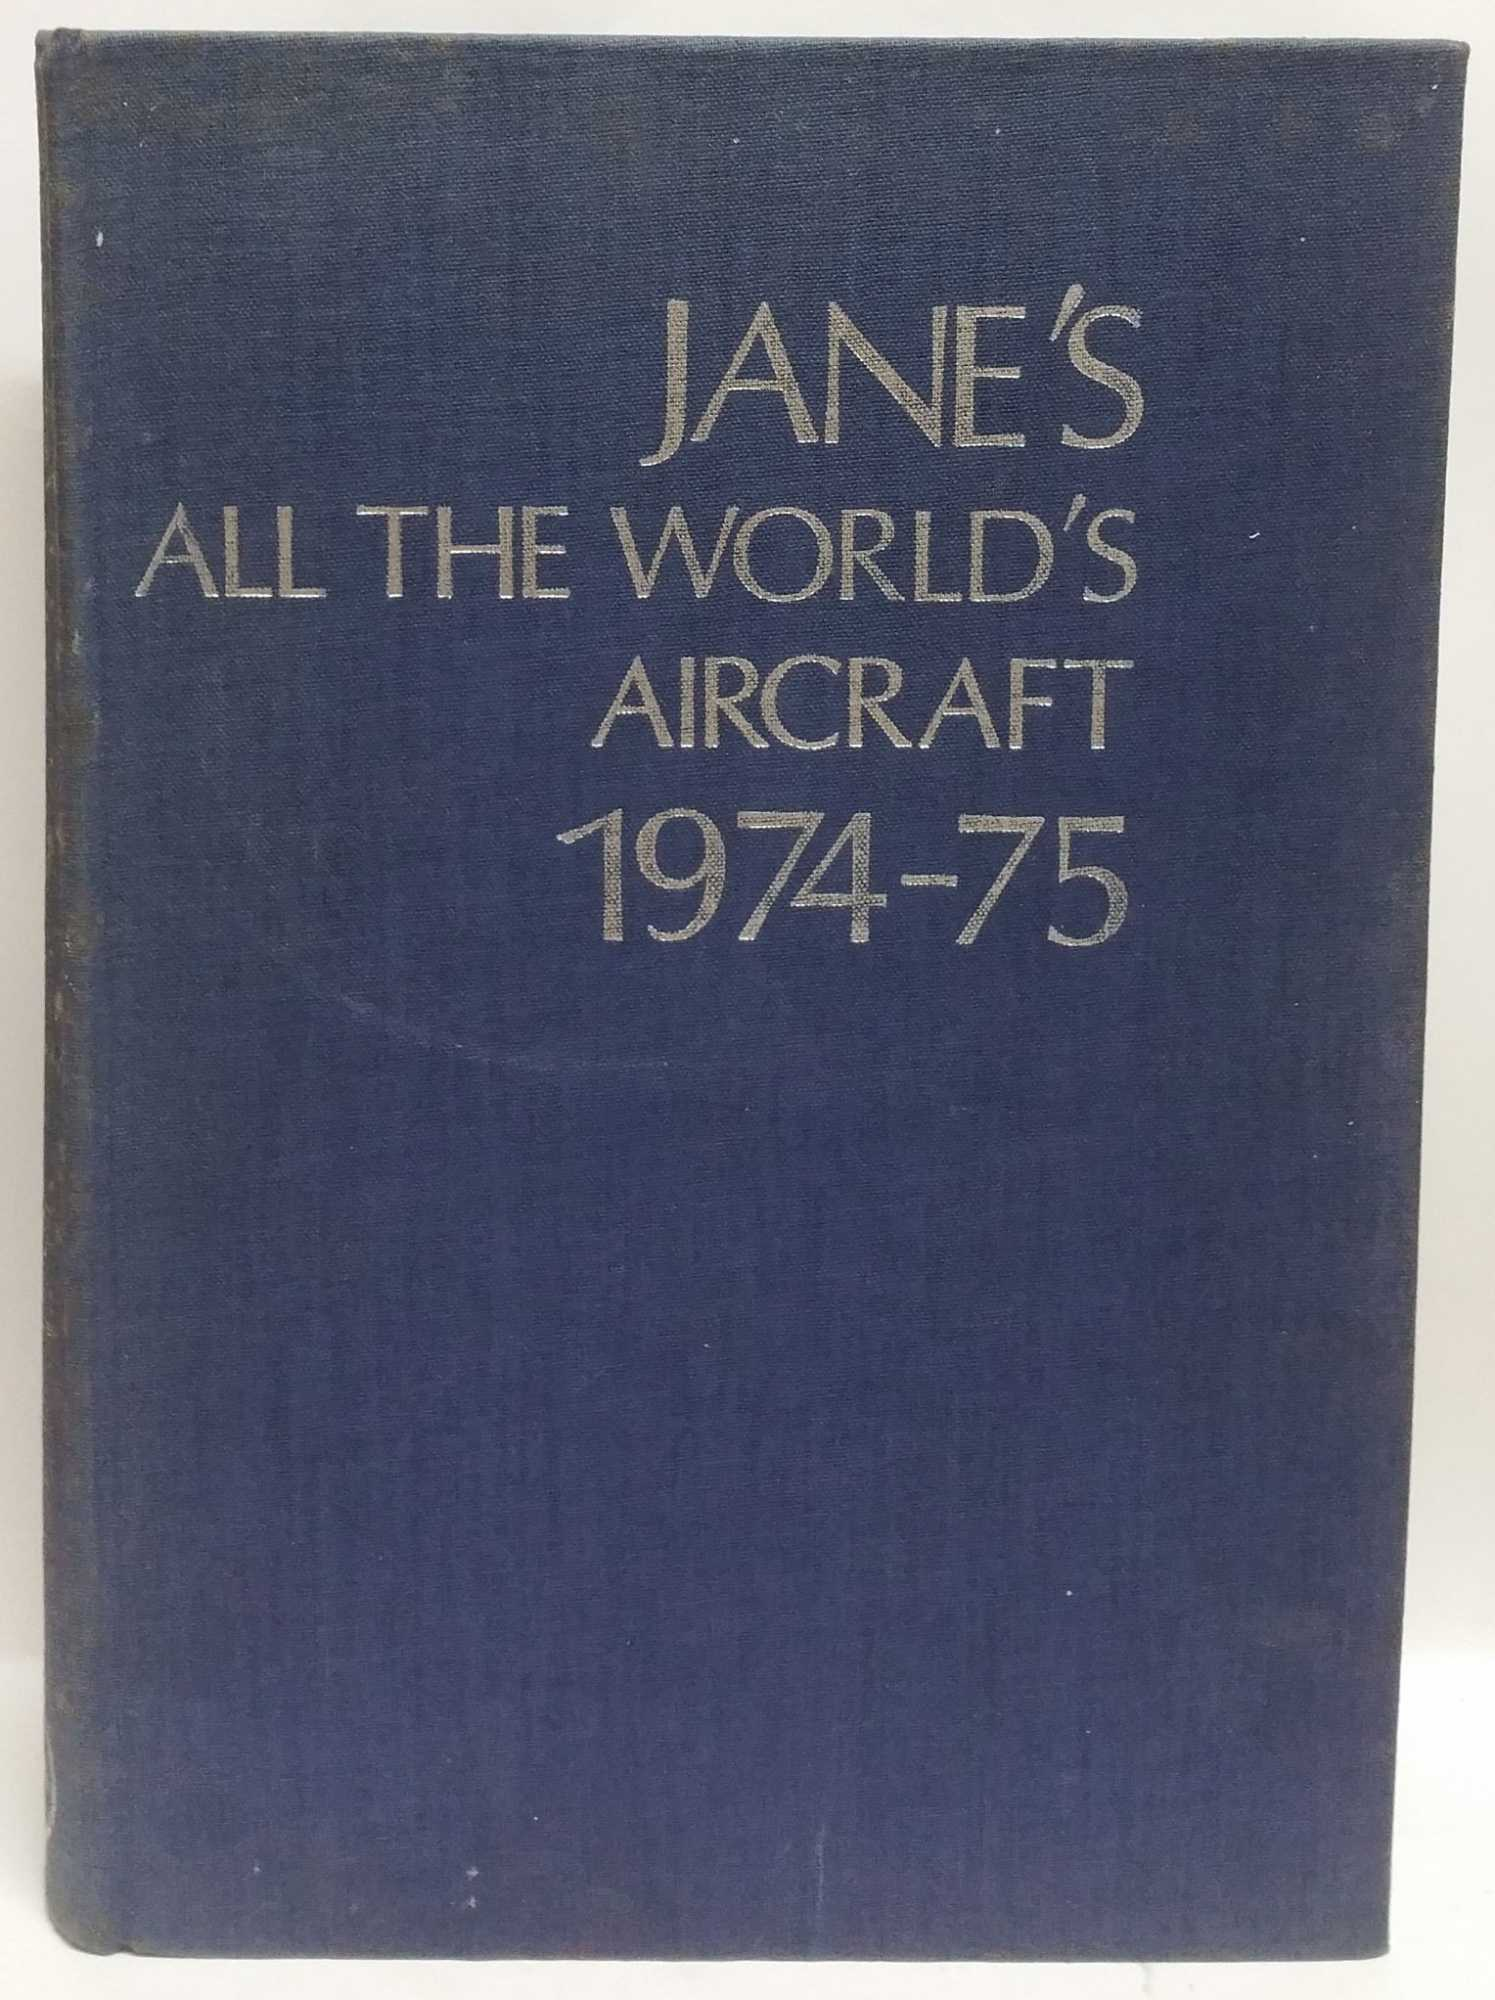 JOHN W. R. TAYLOR - Jane's All The World's Aircraft, 1974-75